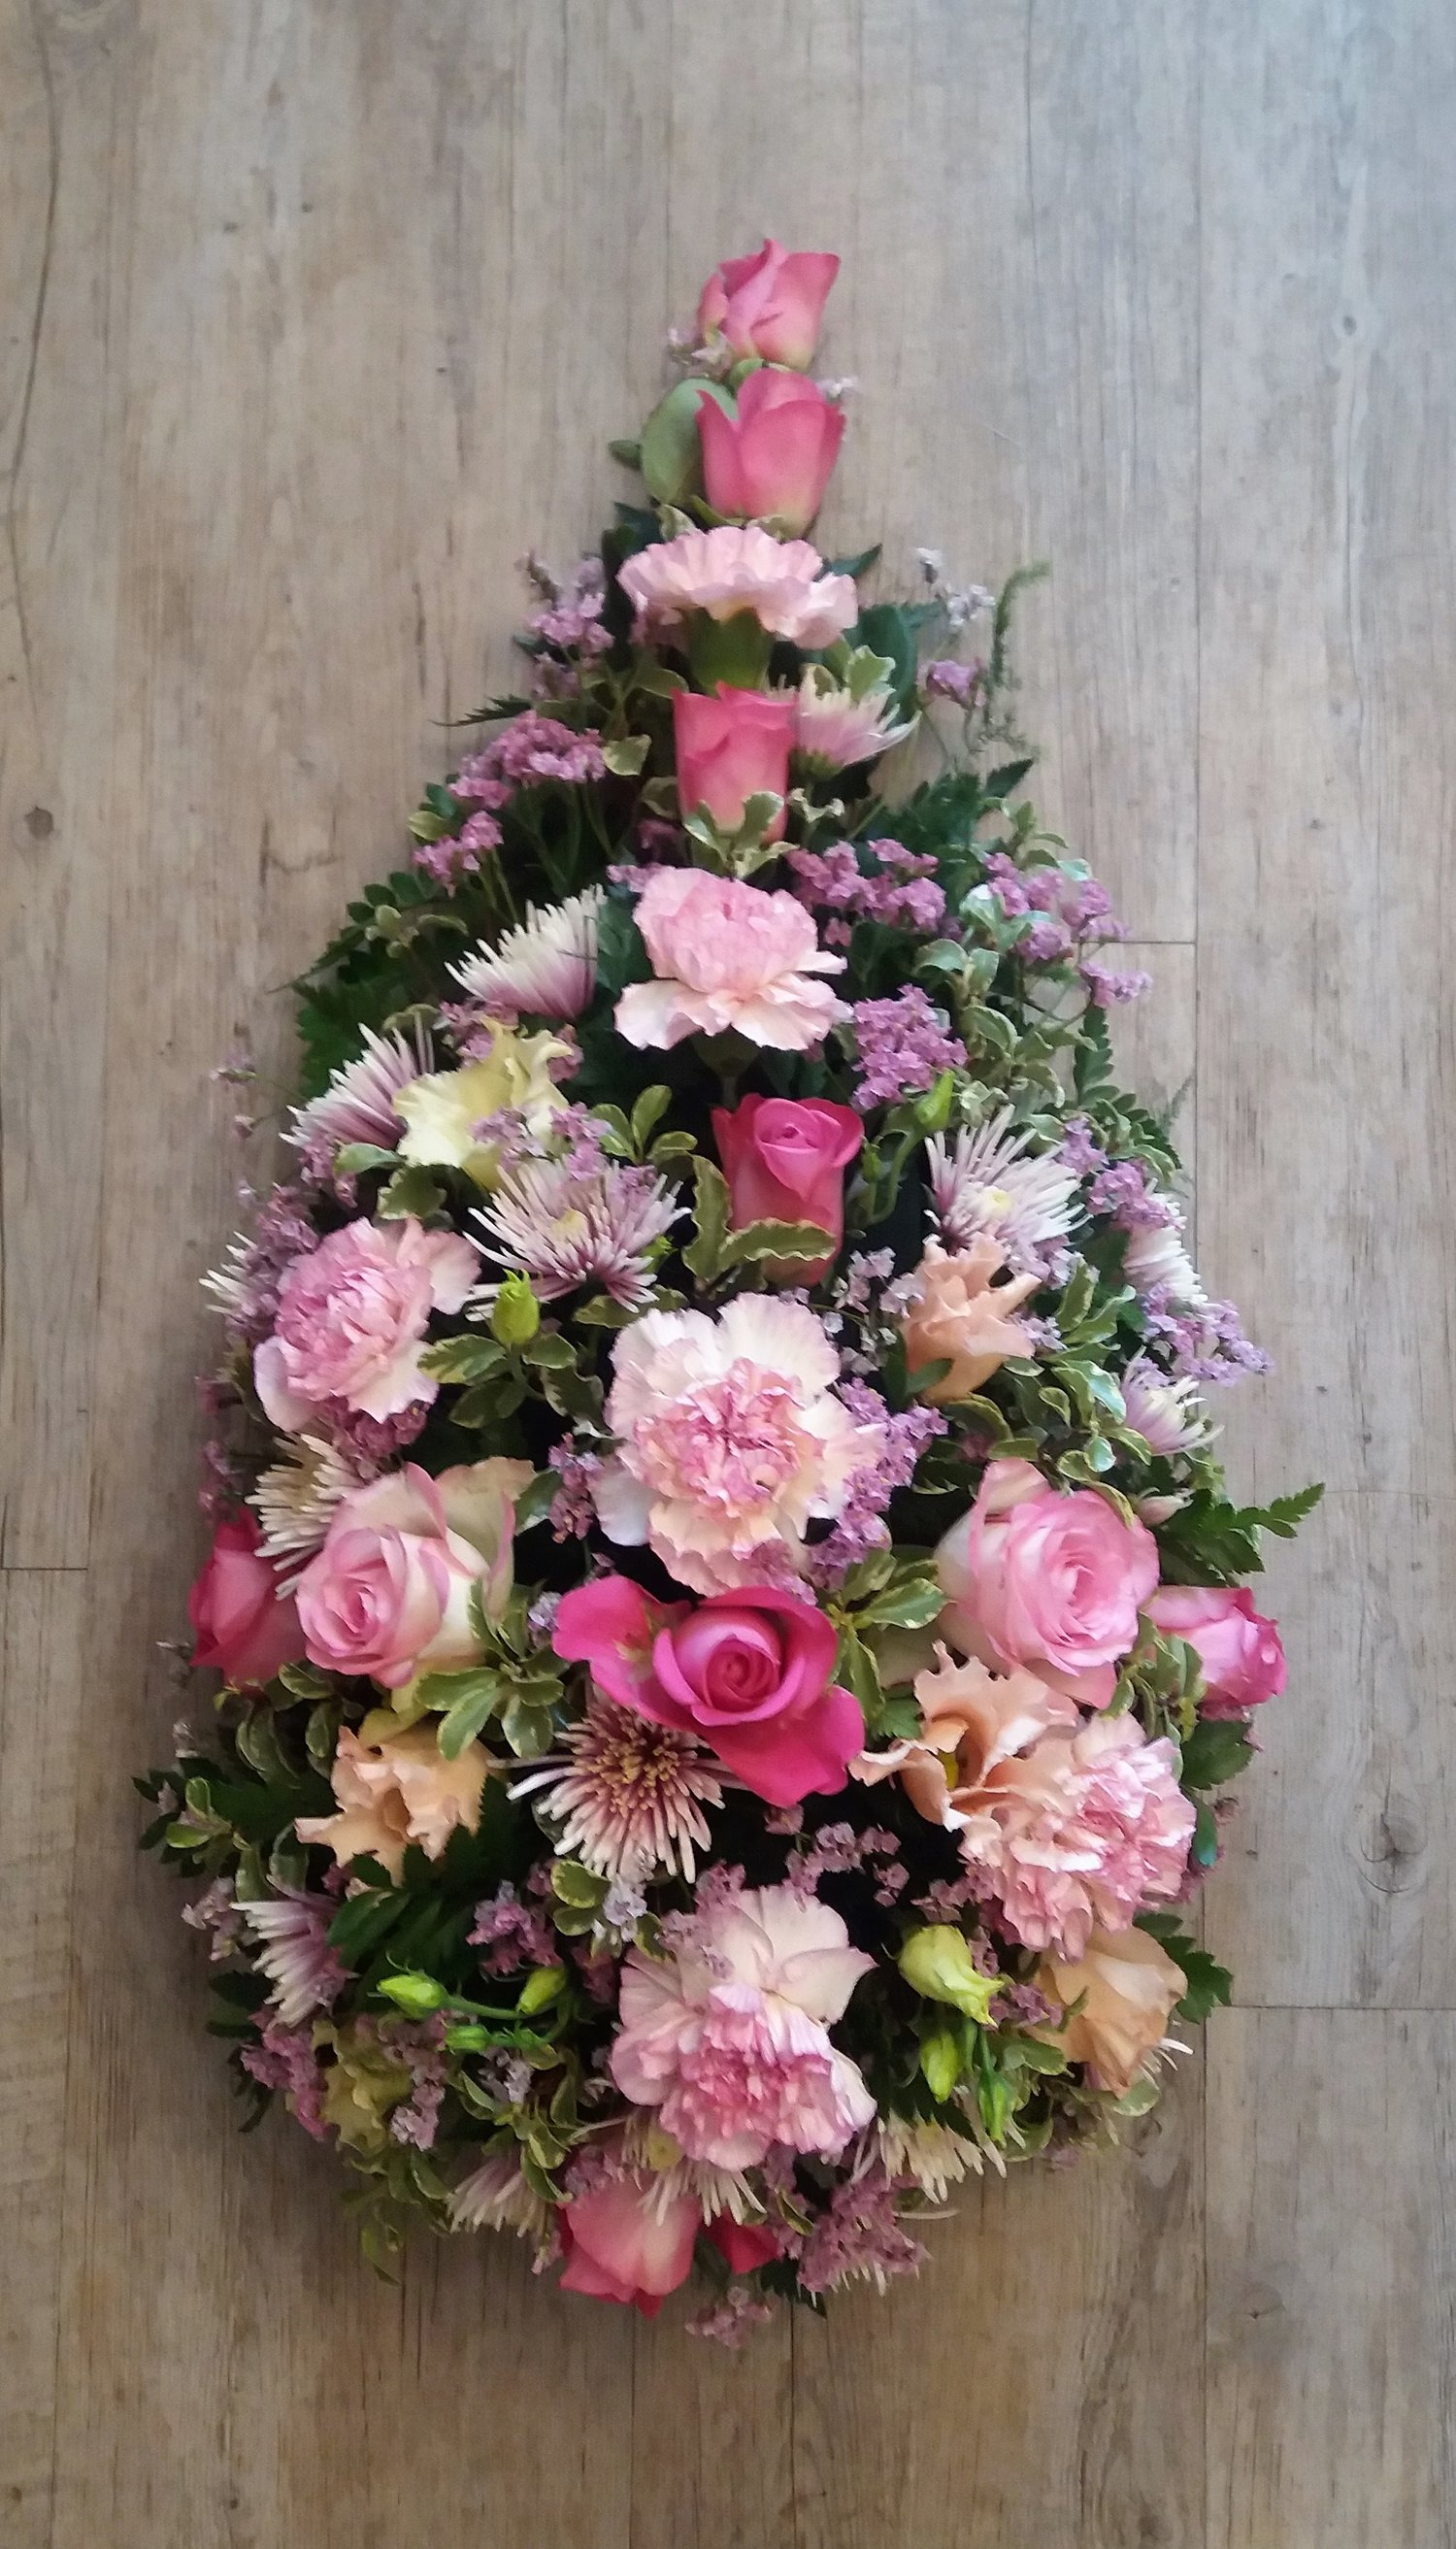 Pink White Single Ended Spray Lucas May Florist Gifts Knebworth